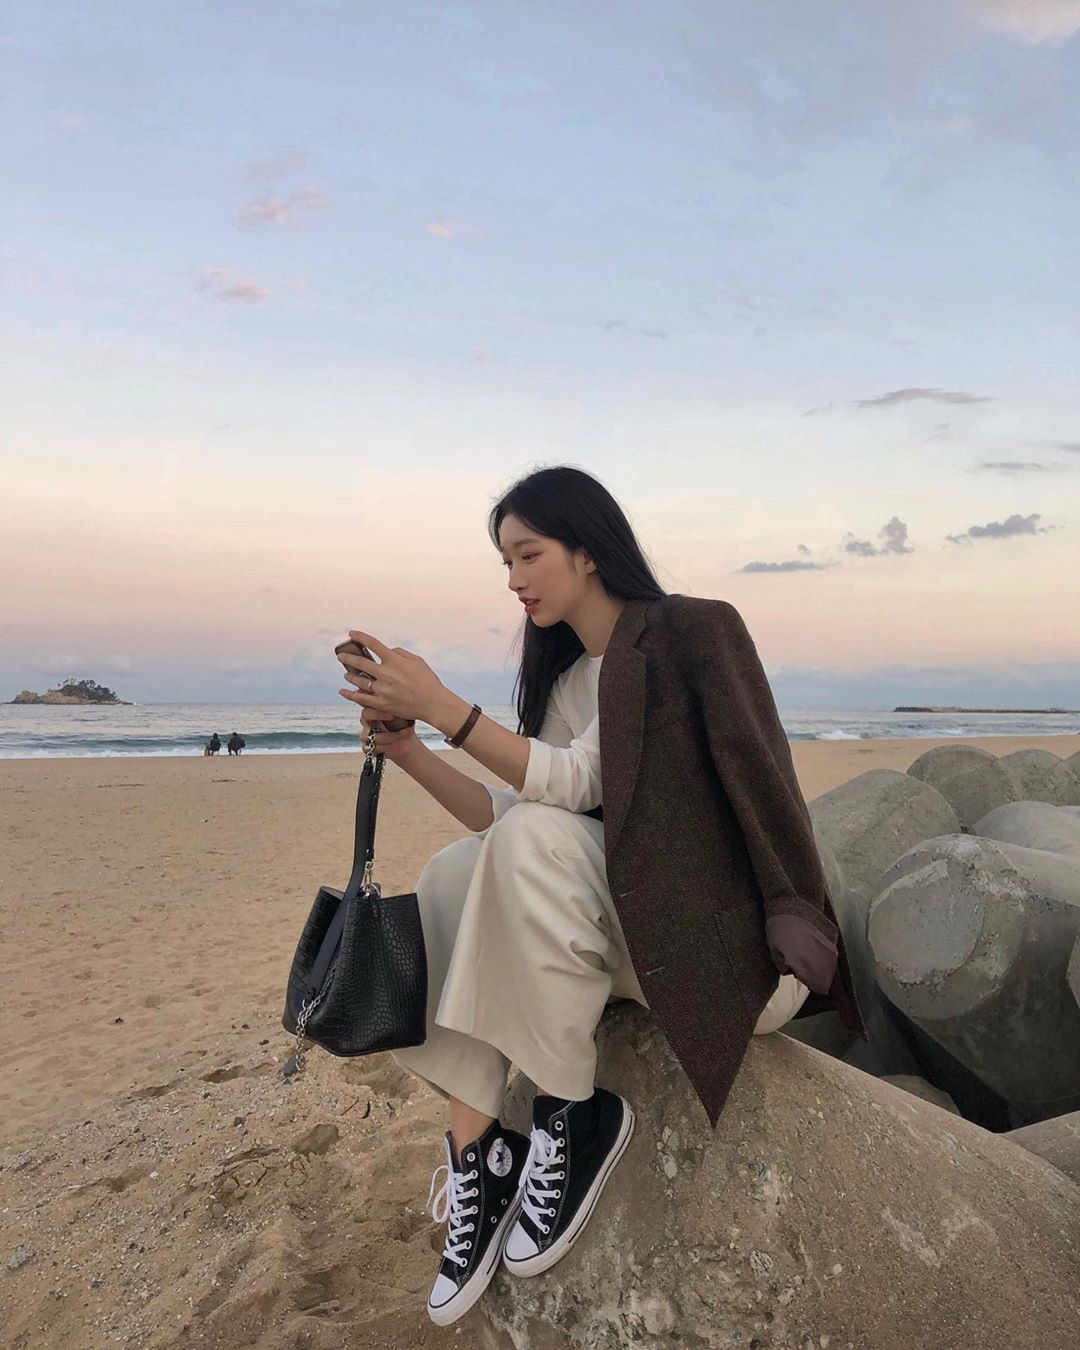 PEOPLE | Fashionable Bag Moments